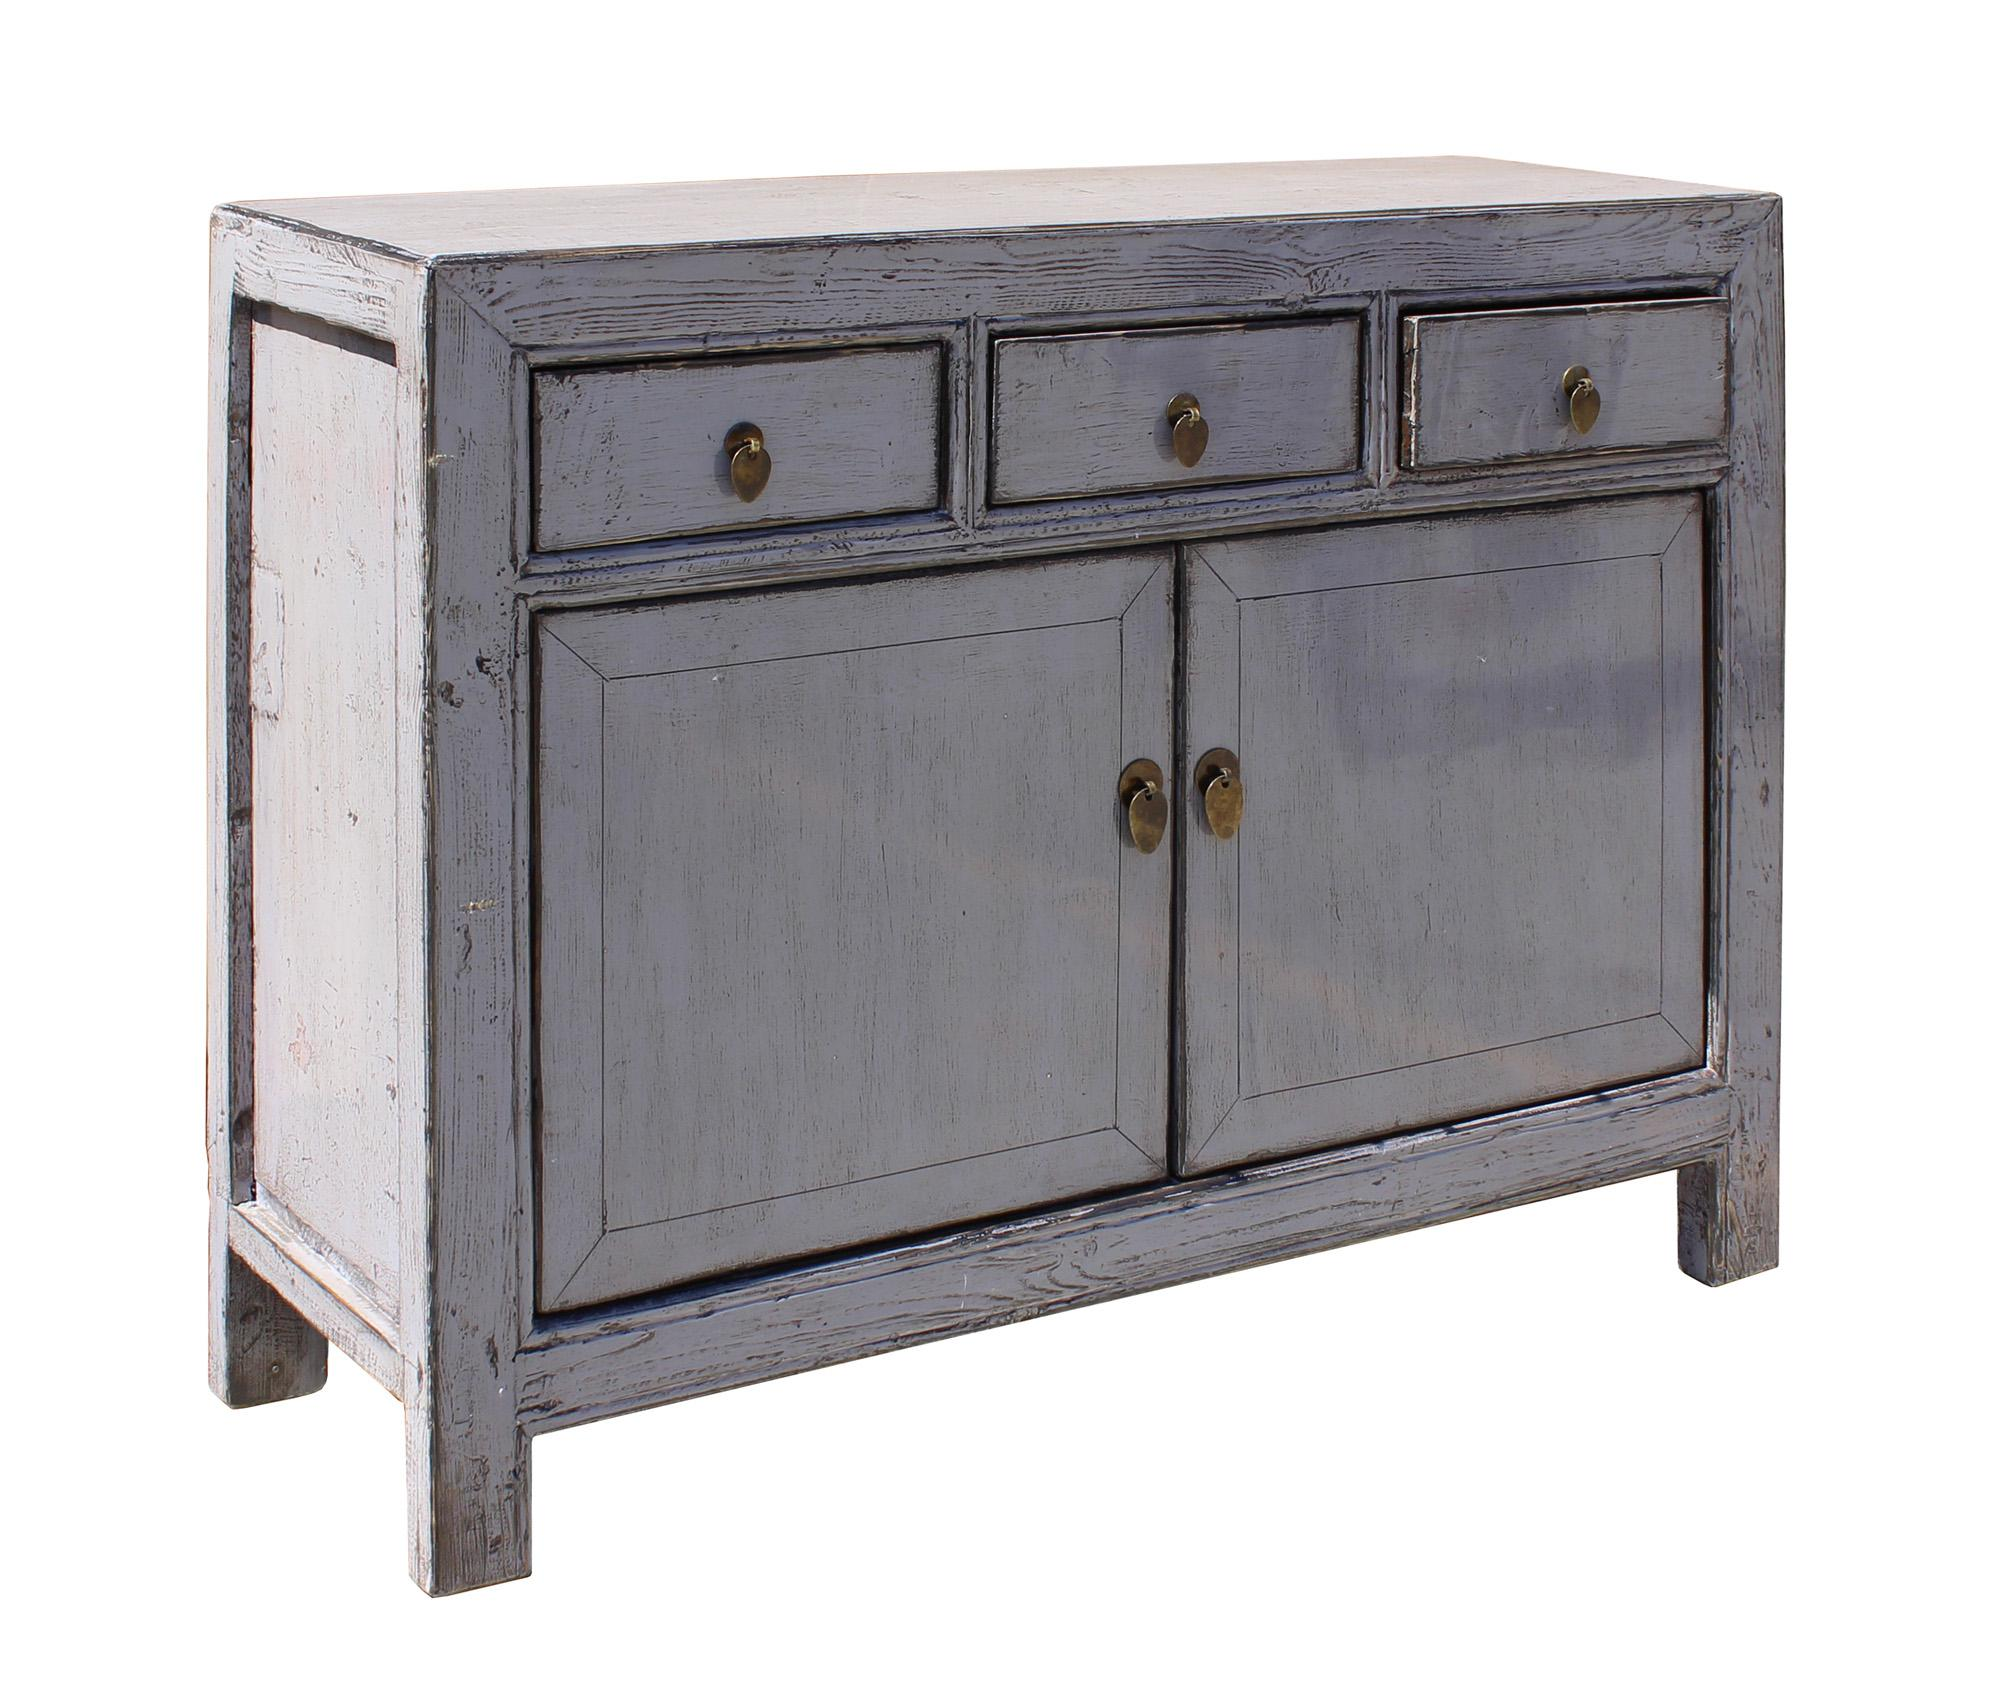 Oriental Simple Light Gray Credenza Sideboard Buffet Table Cabinet Chairish